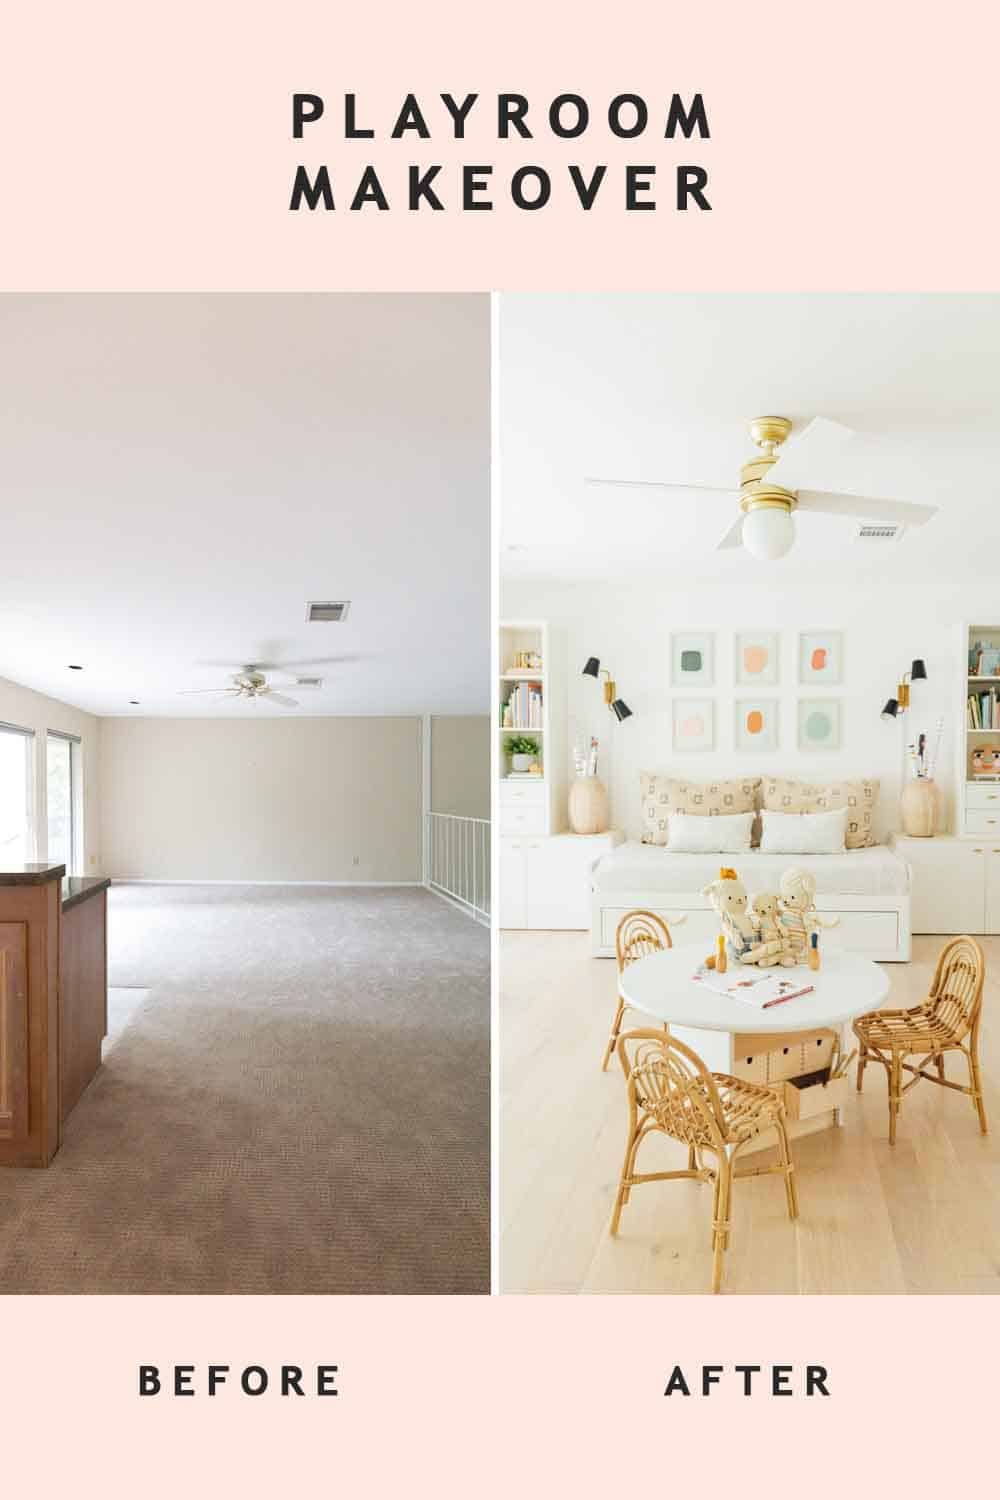 side by side photo of a before and after playroom